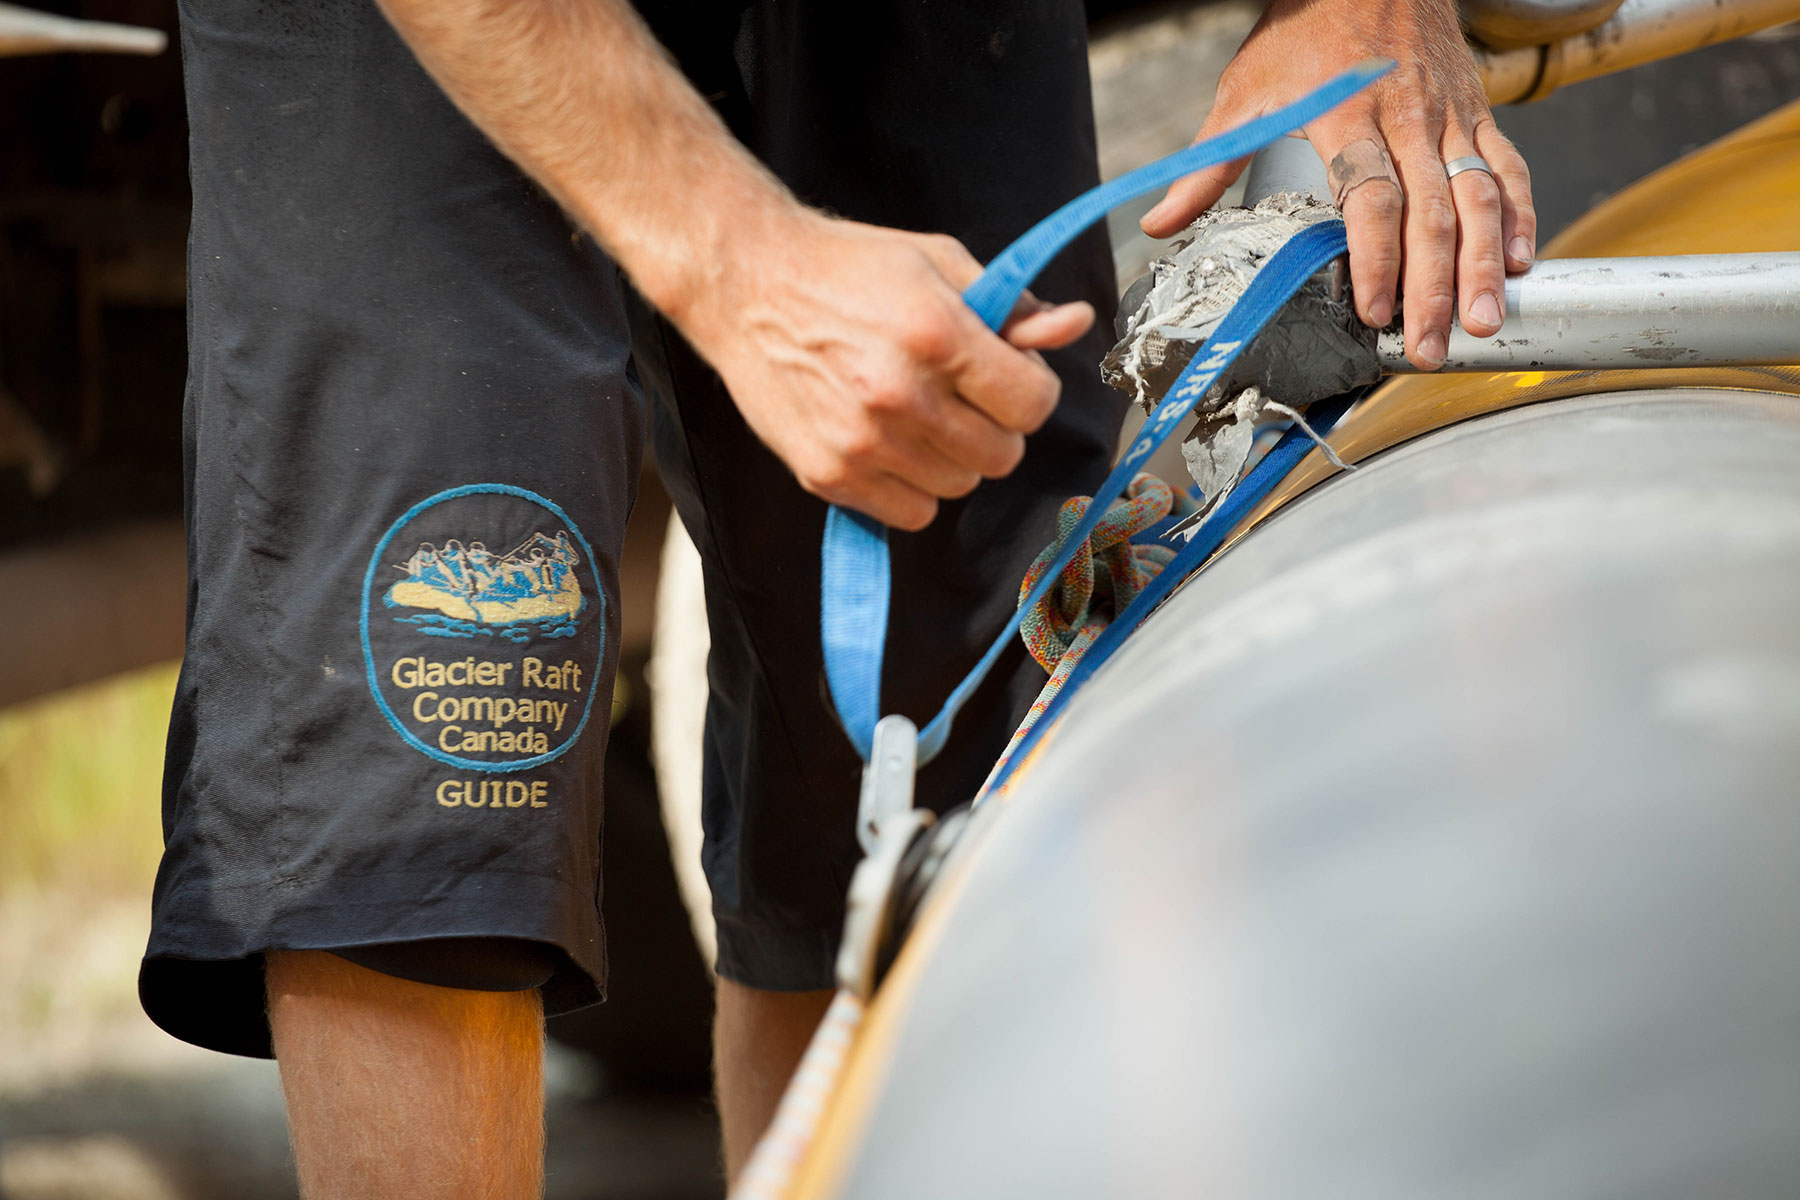 A Glacier Raft Company guide prepping a raft to be put on water